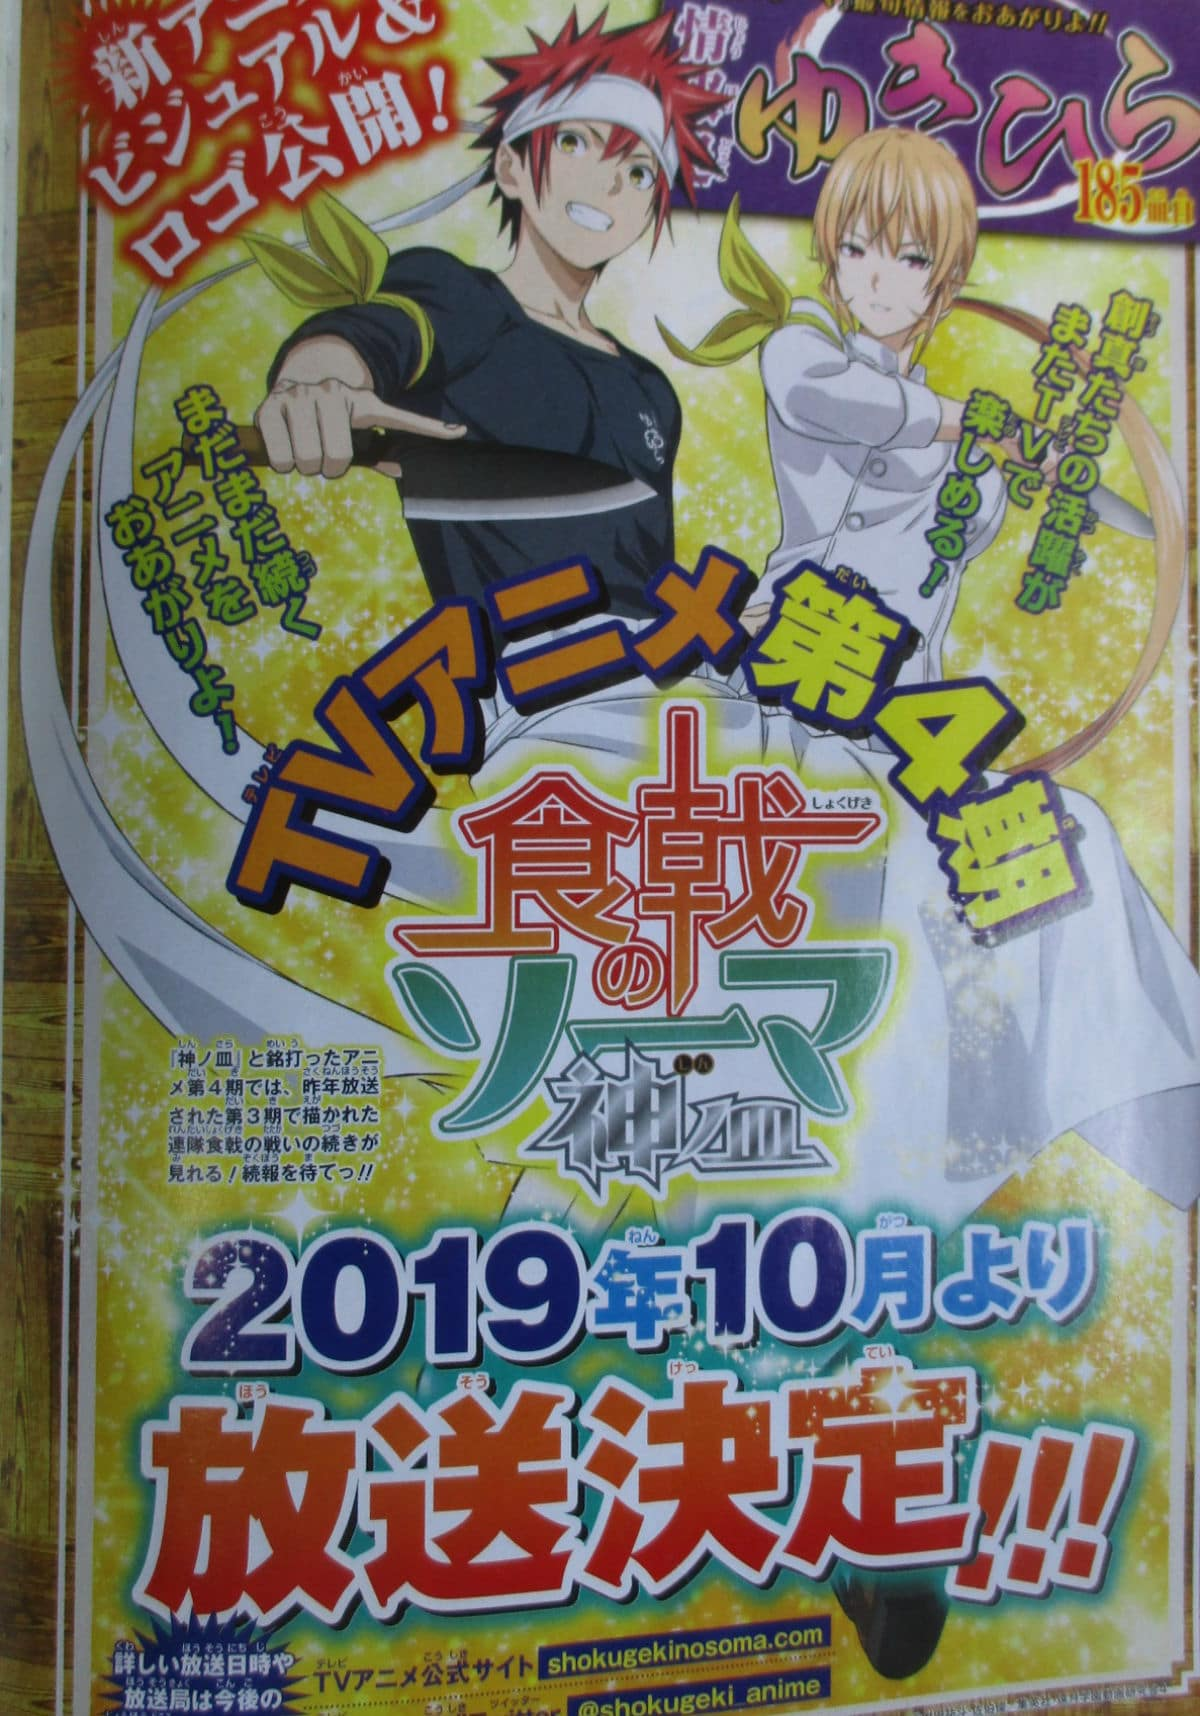 Food-Wars-Season-4-Anime-Announcement.jp